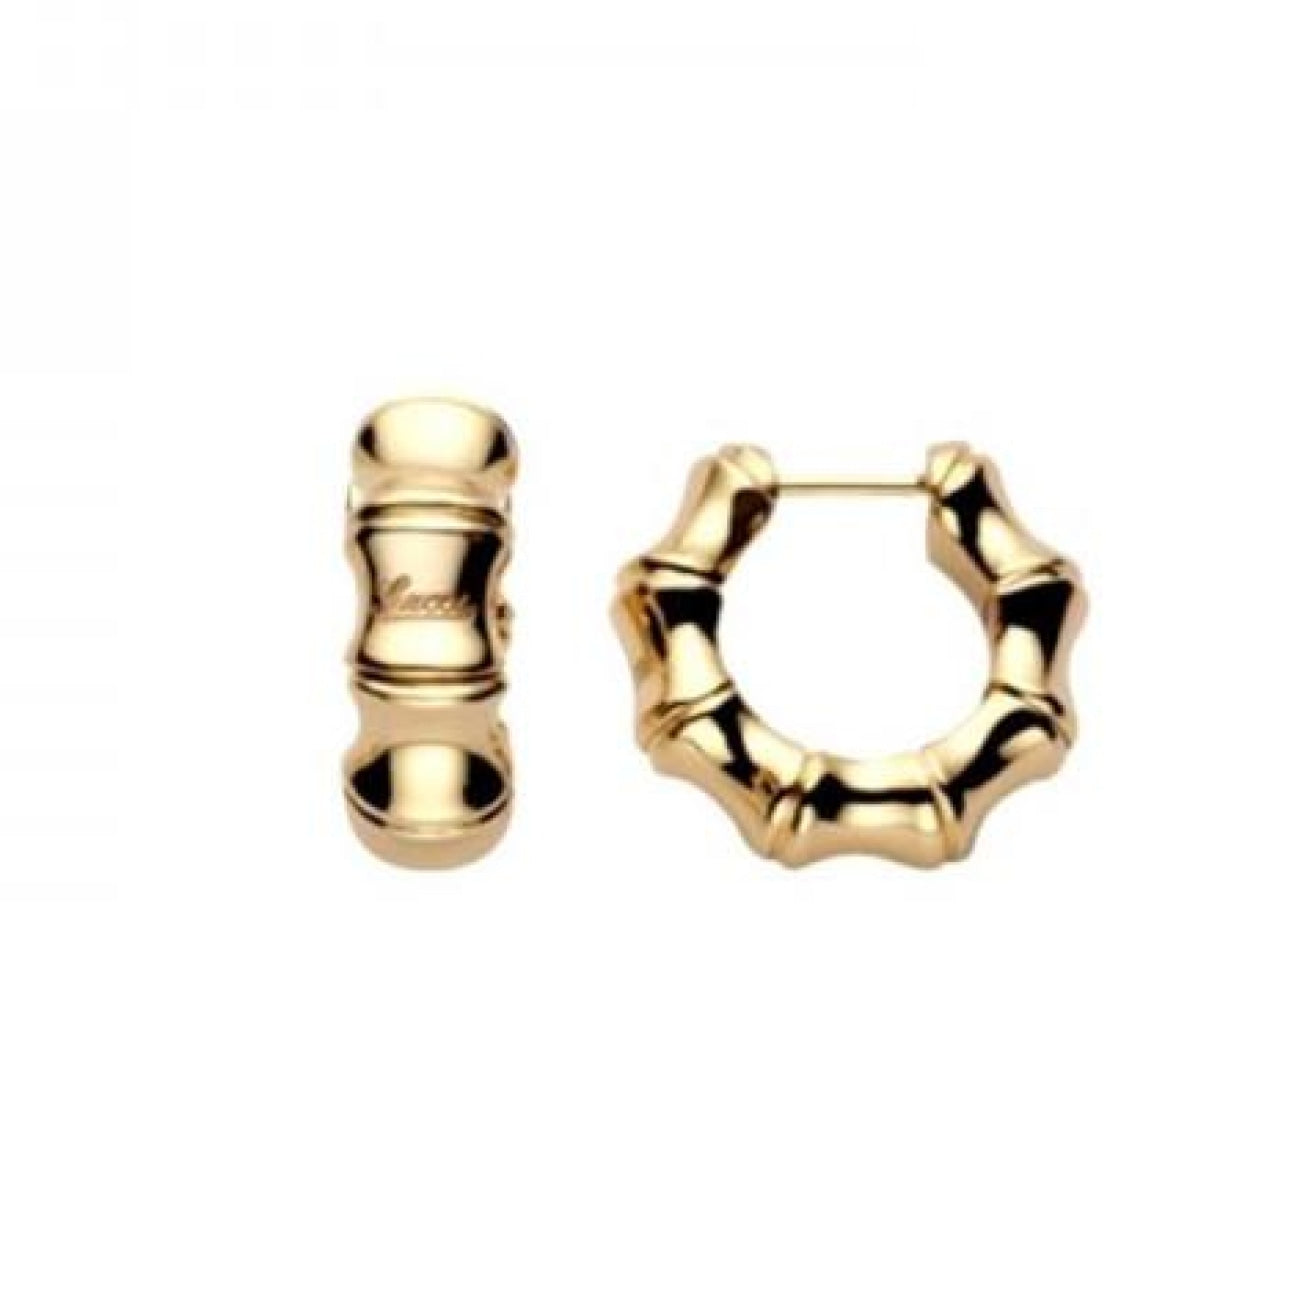 Gucci Jewelry - 18k Yellow Gold Bamboo Earring | Manfredi Jewels